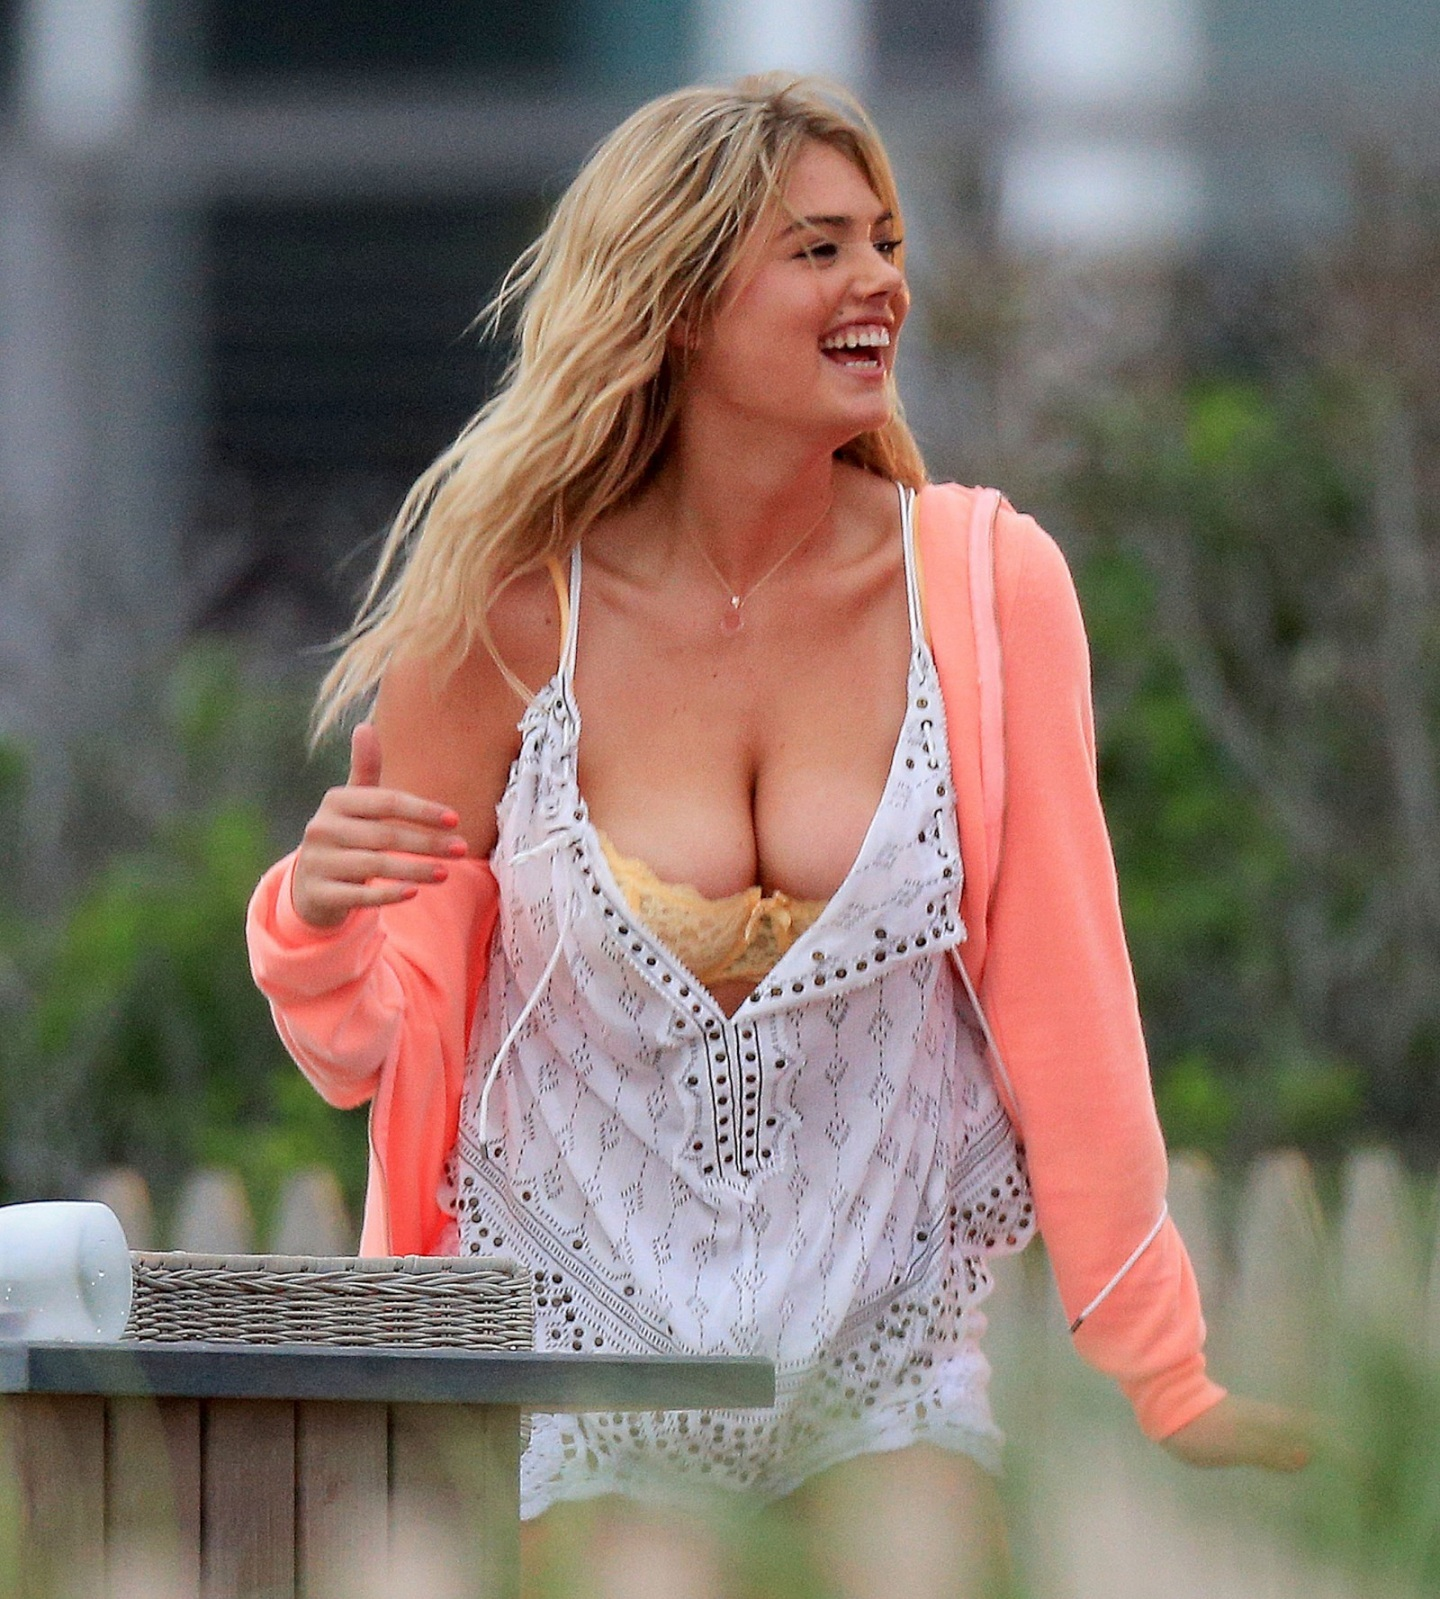 Kate Upton The Other Woman Movie Set In West Hampton The Other Woman